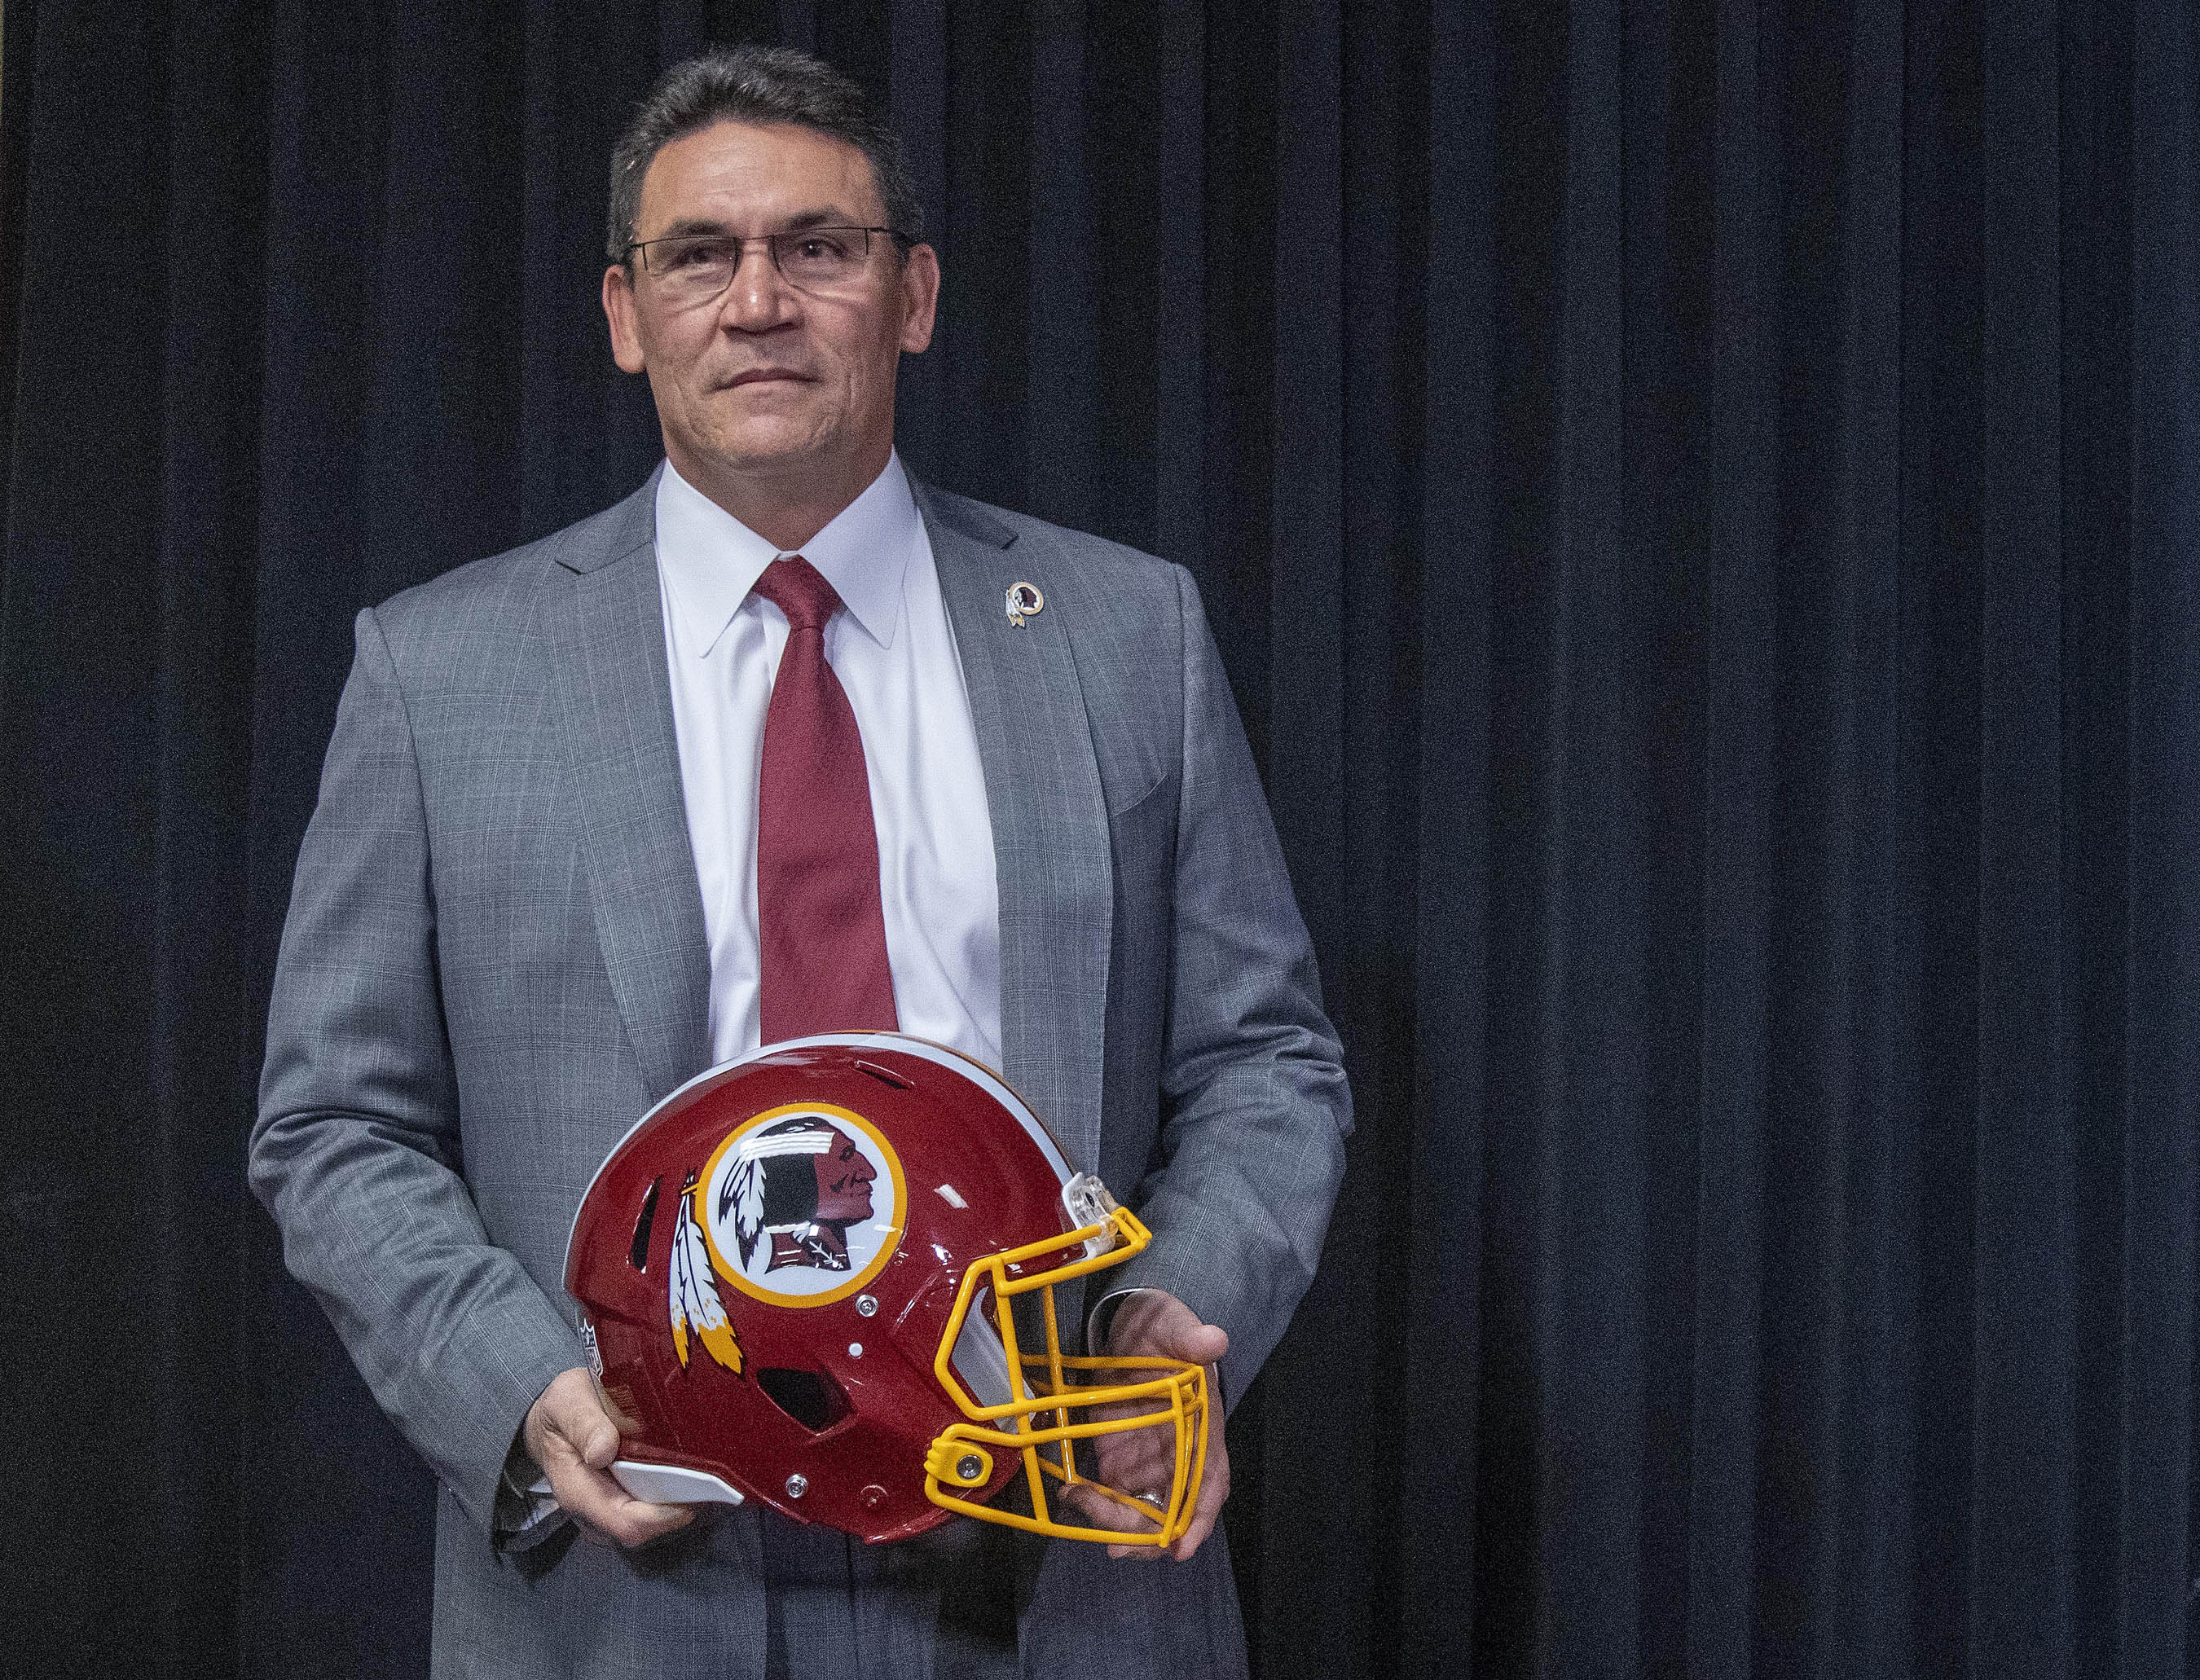 Ron Rivera vows to instill 'player-centric culture' in Washington